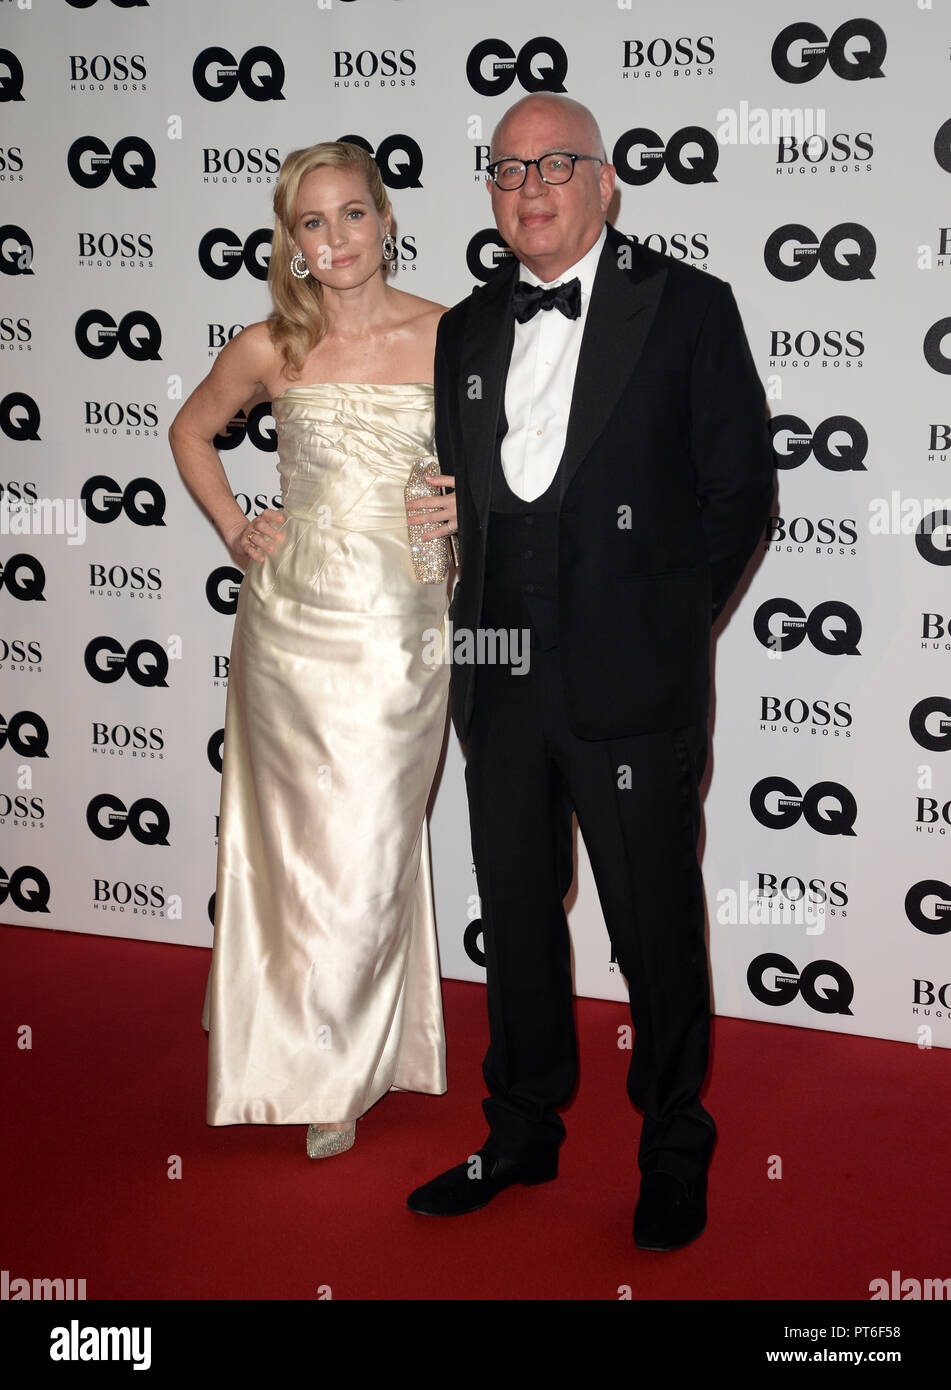 GQ Men Of The Year Awards  Featuring: Michael Wolff Where: London, United Kingdom When: 05 Sep 2018 Credit: Tony Oudot/WENN - Stock Image